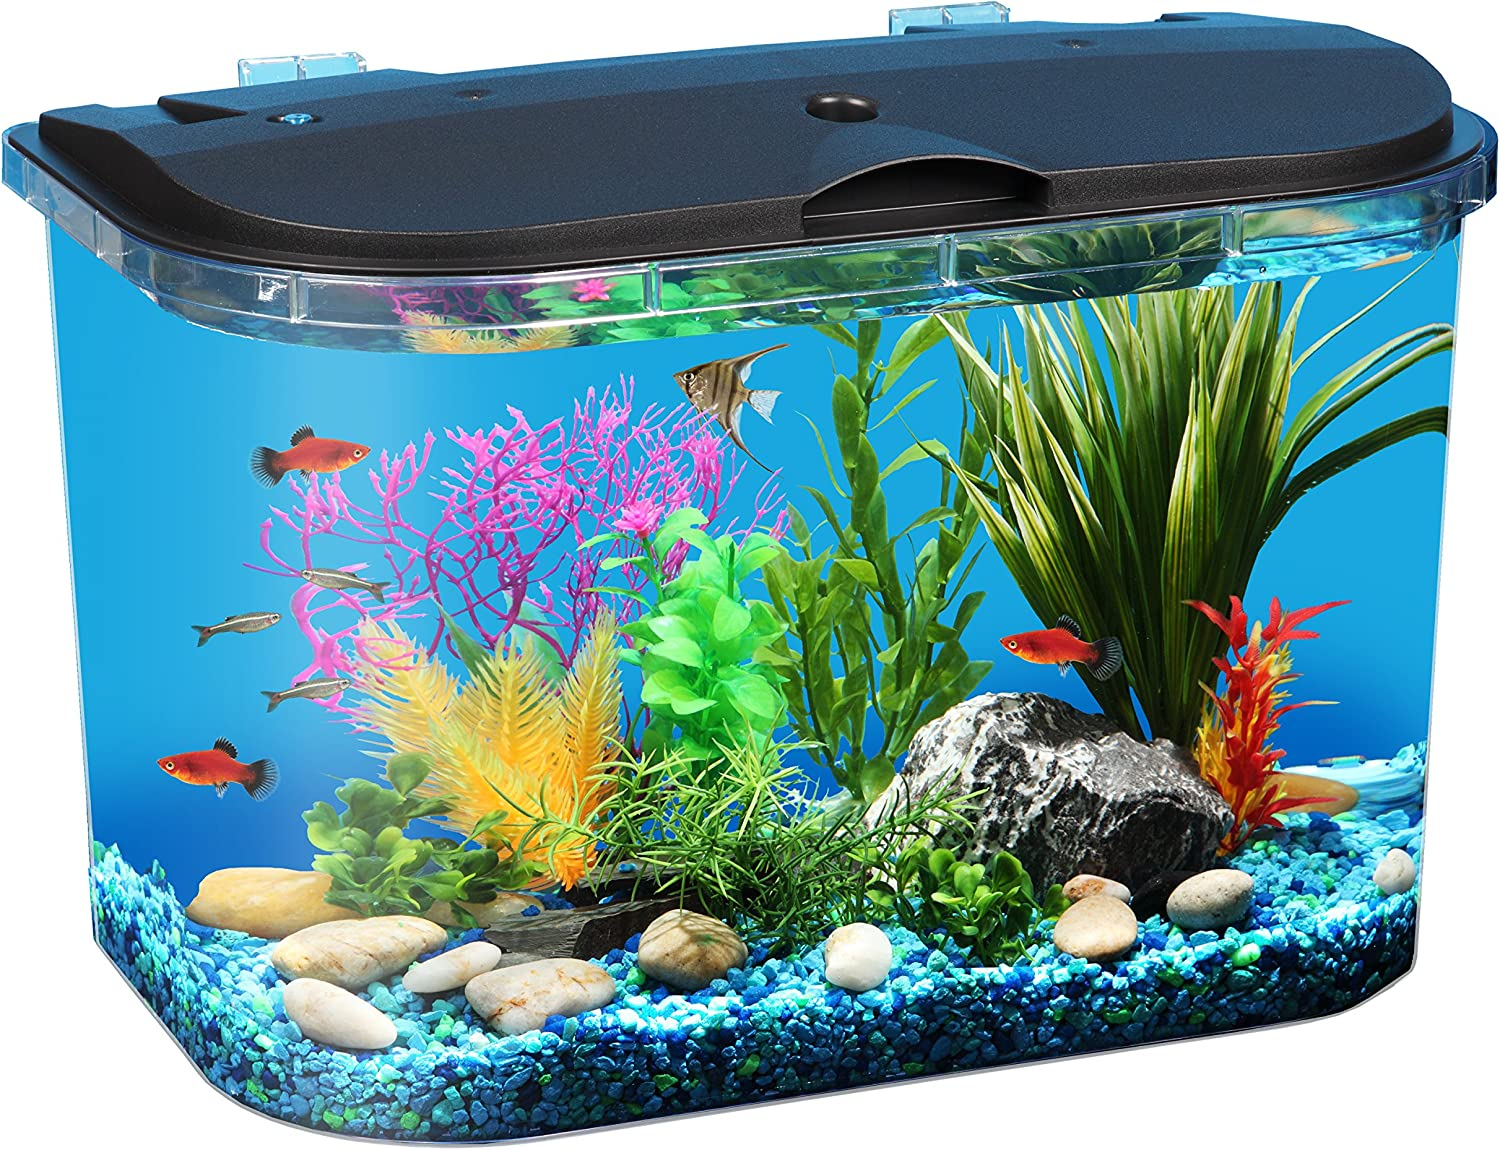 Koller Products Panaview 5-Gallon Aquarium Kit - Power Filter - LED Lighting, Black (Aq15005)